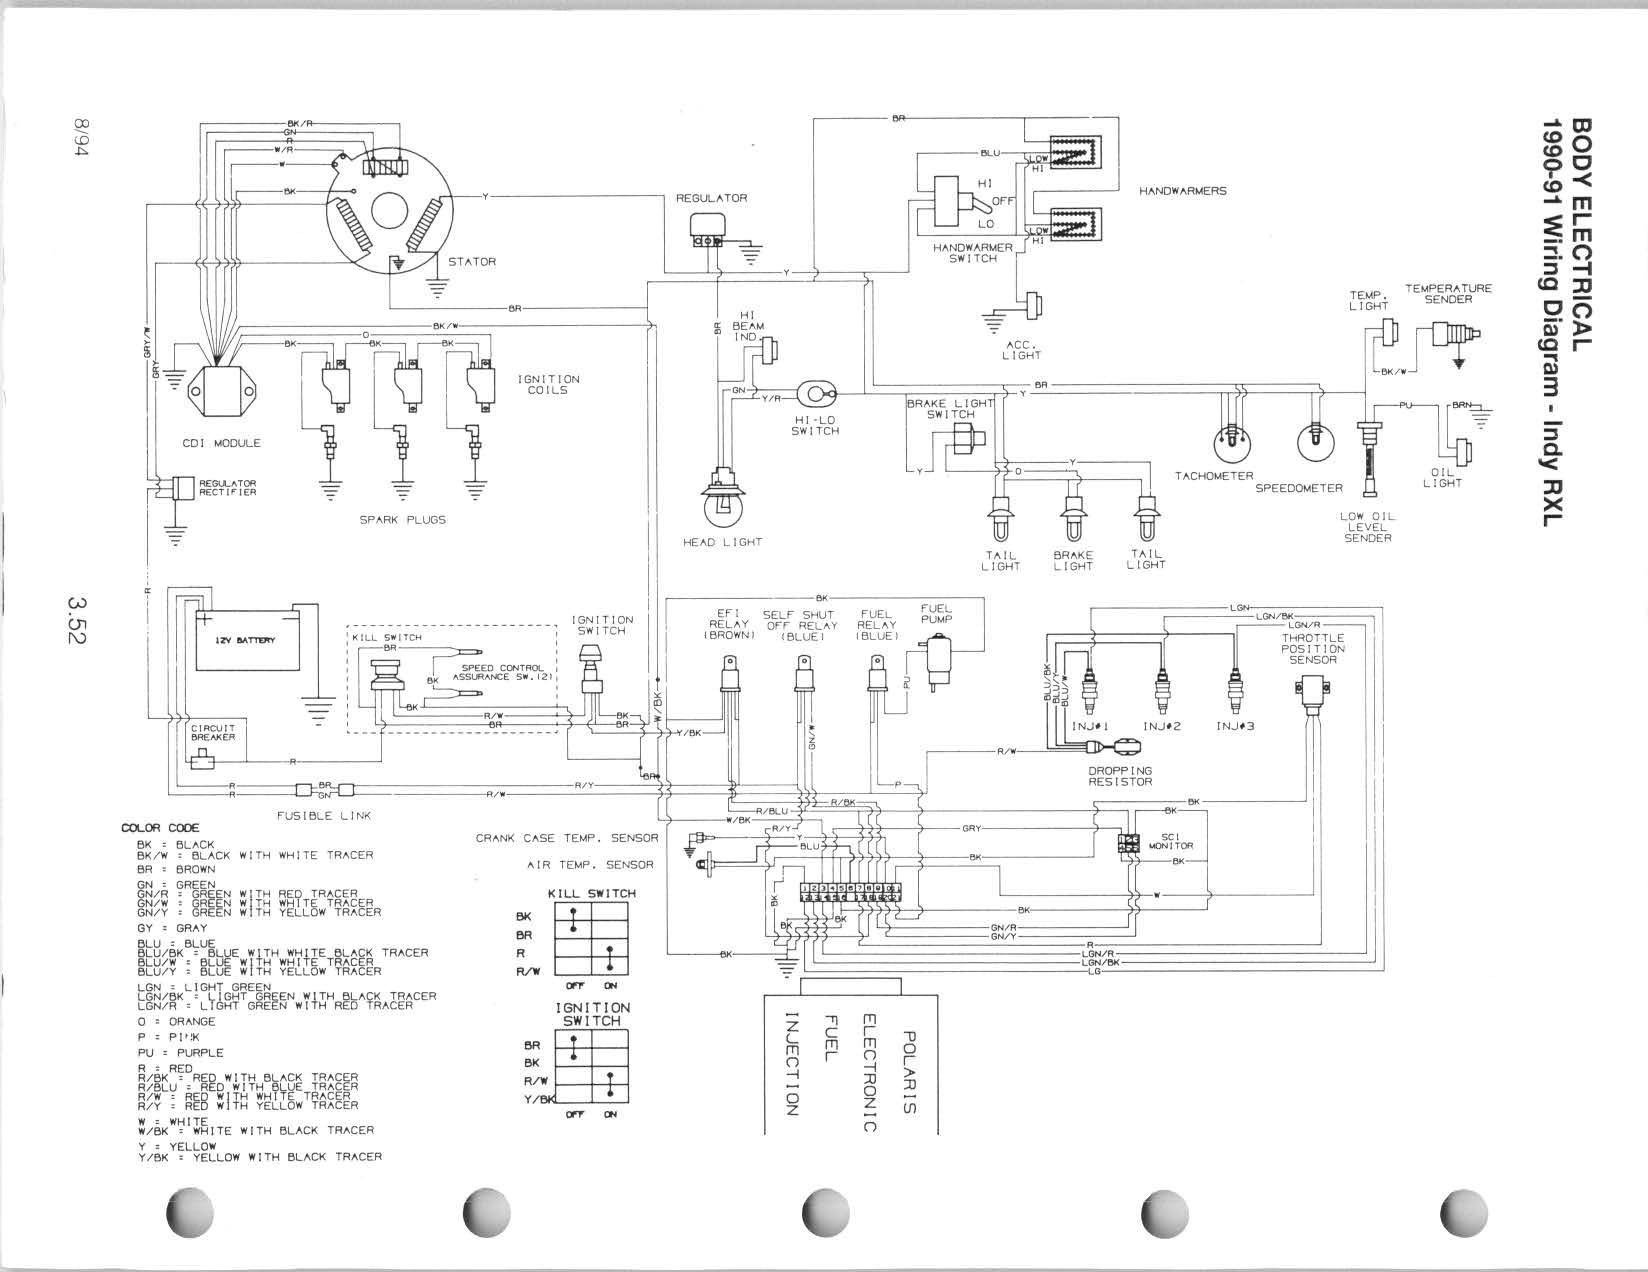 wiring diagram for 1991 polaris rxl wiring diagram for 97 polaris 425 magnum